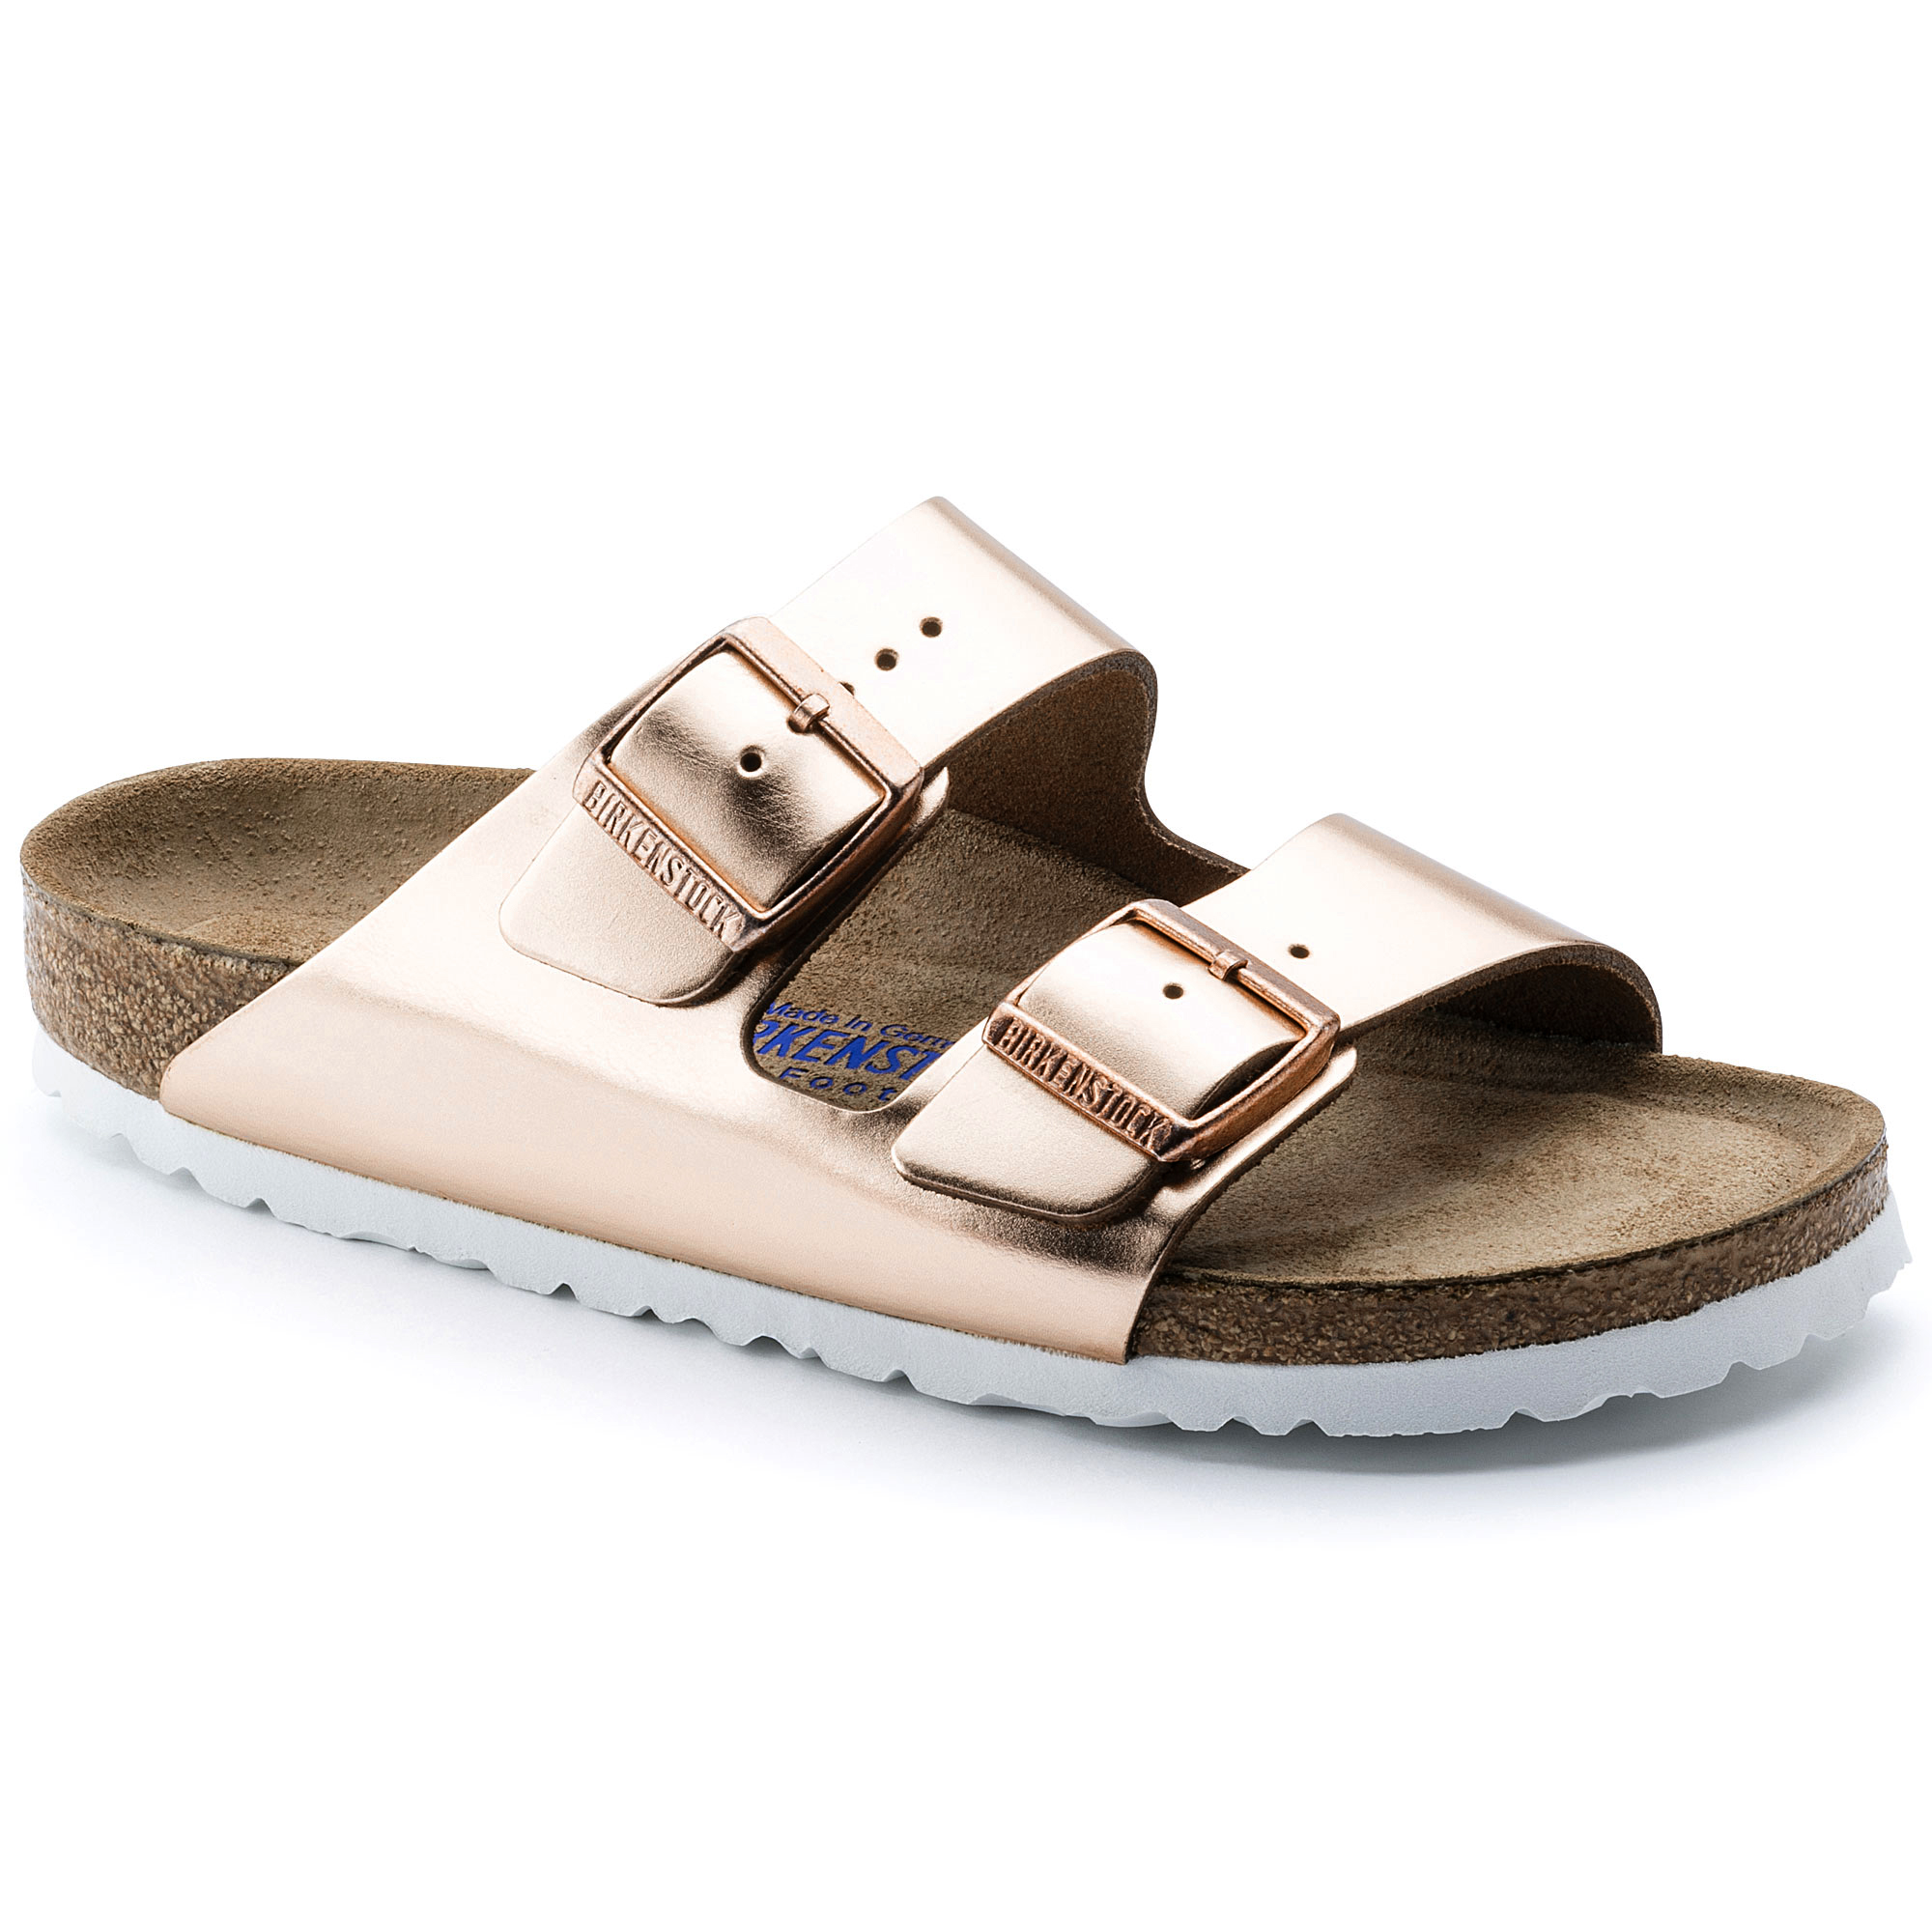 Birkenstock Women's Arizona Soft Footbed Sandal Metallic